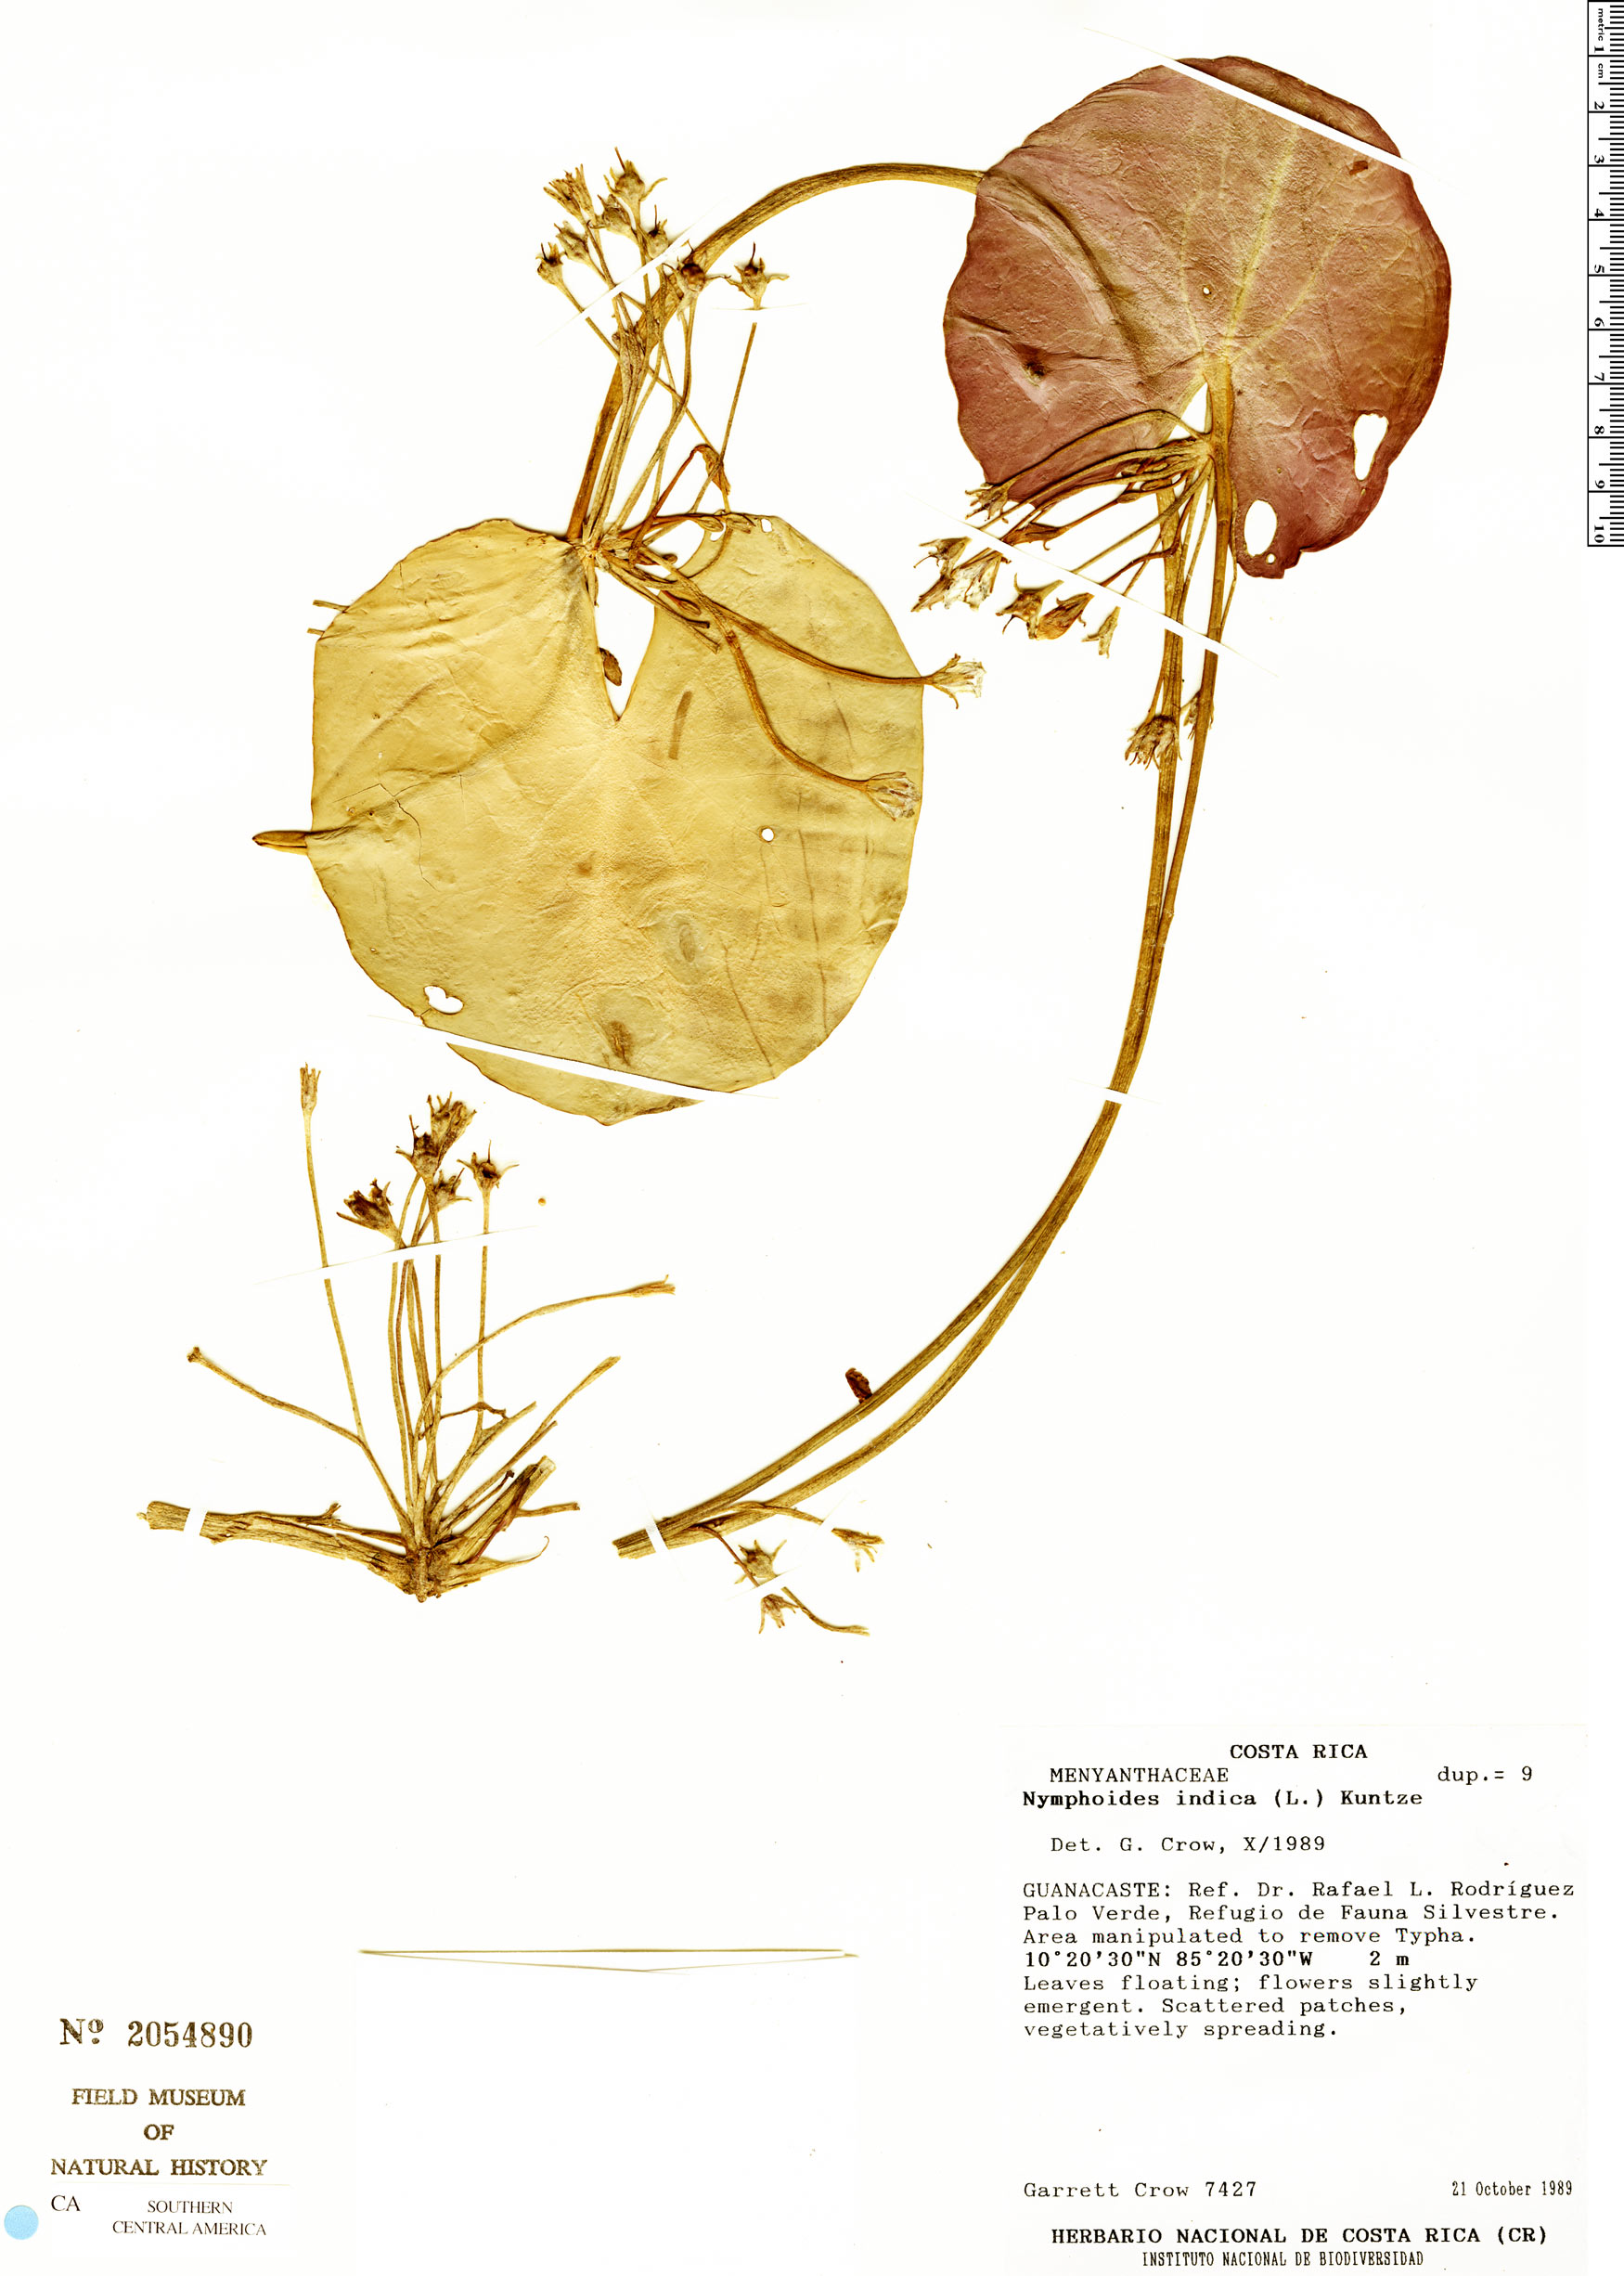 Nymphoides indica image